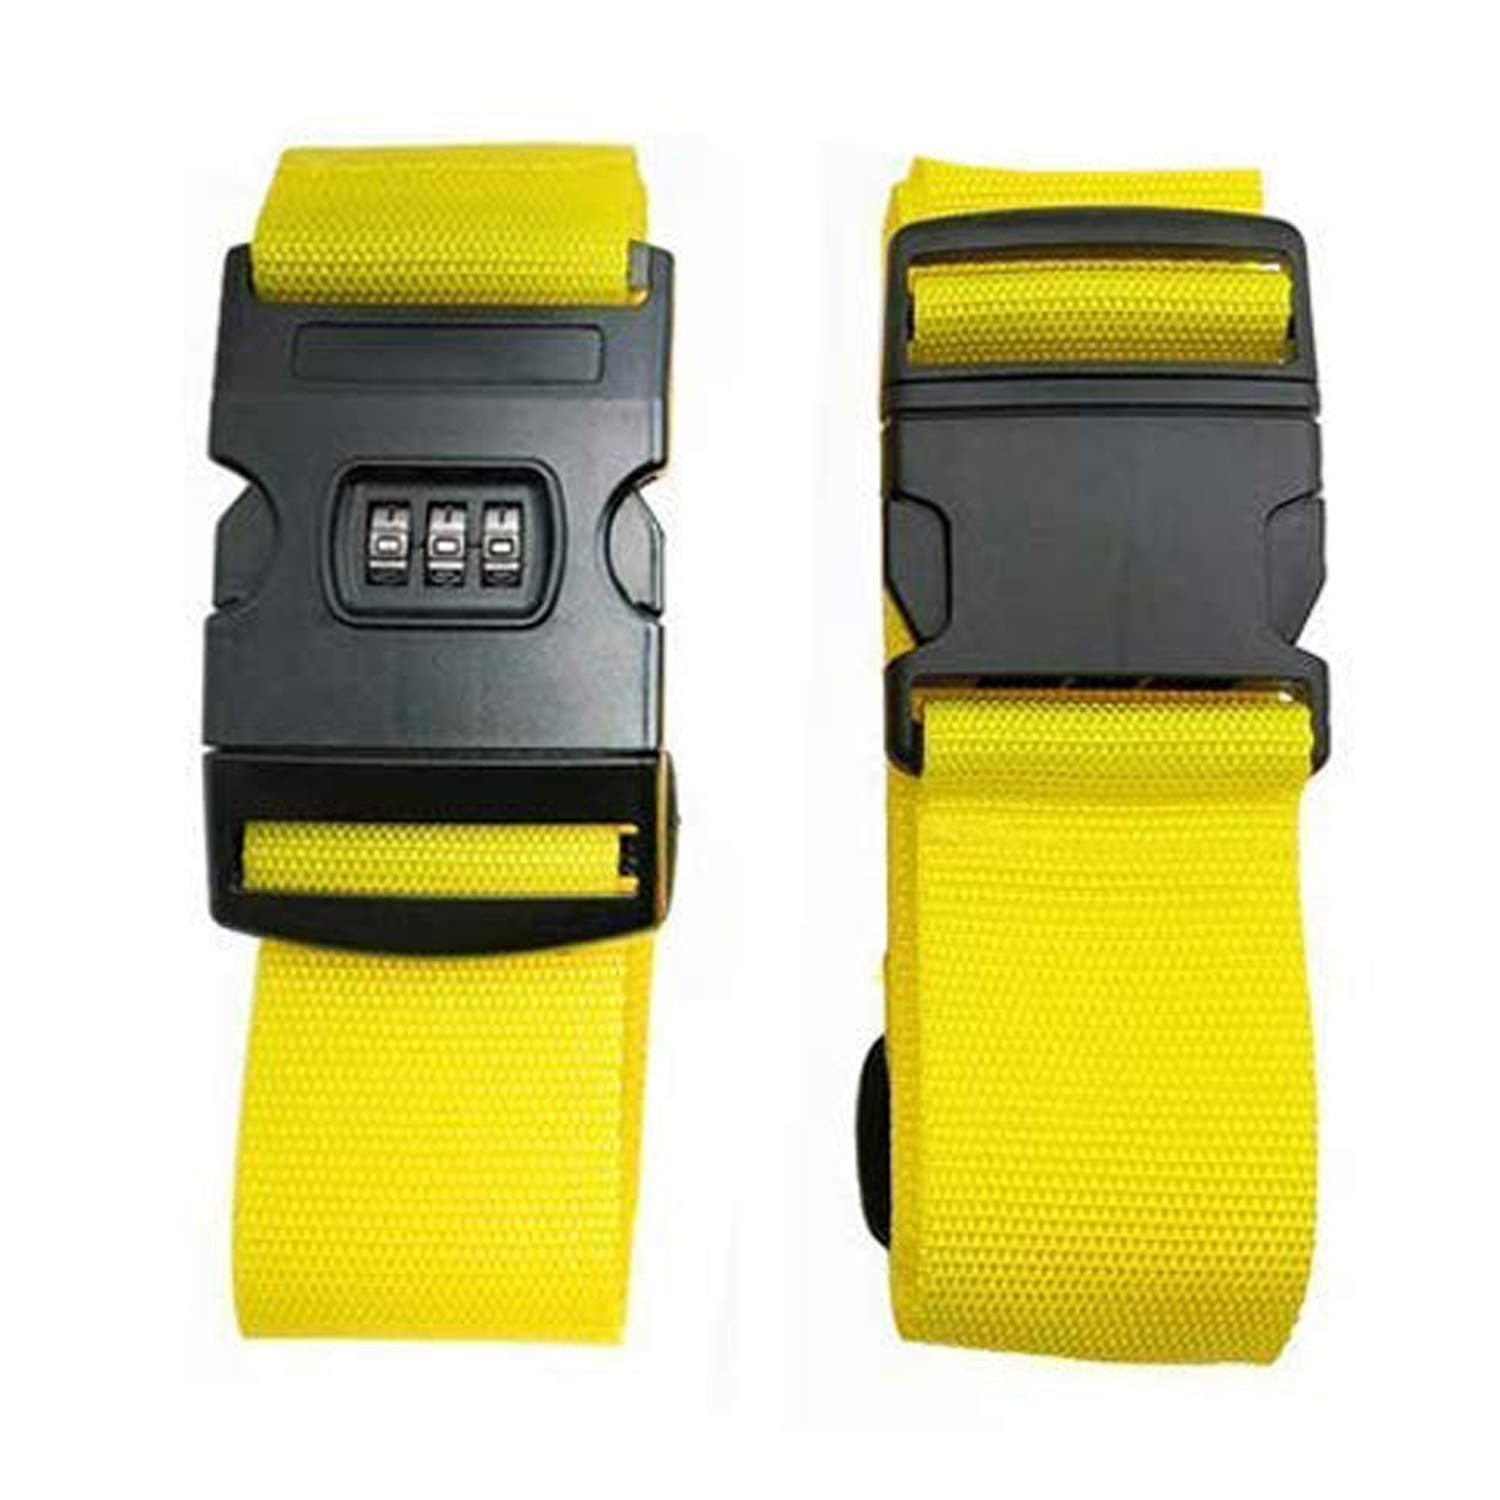 CHMETE Travel Suitcase Belts/Luggage Straps, 2pcs-yellow by CHMETE (Image #2)